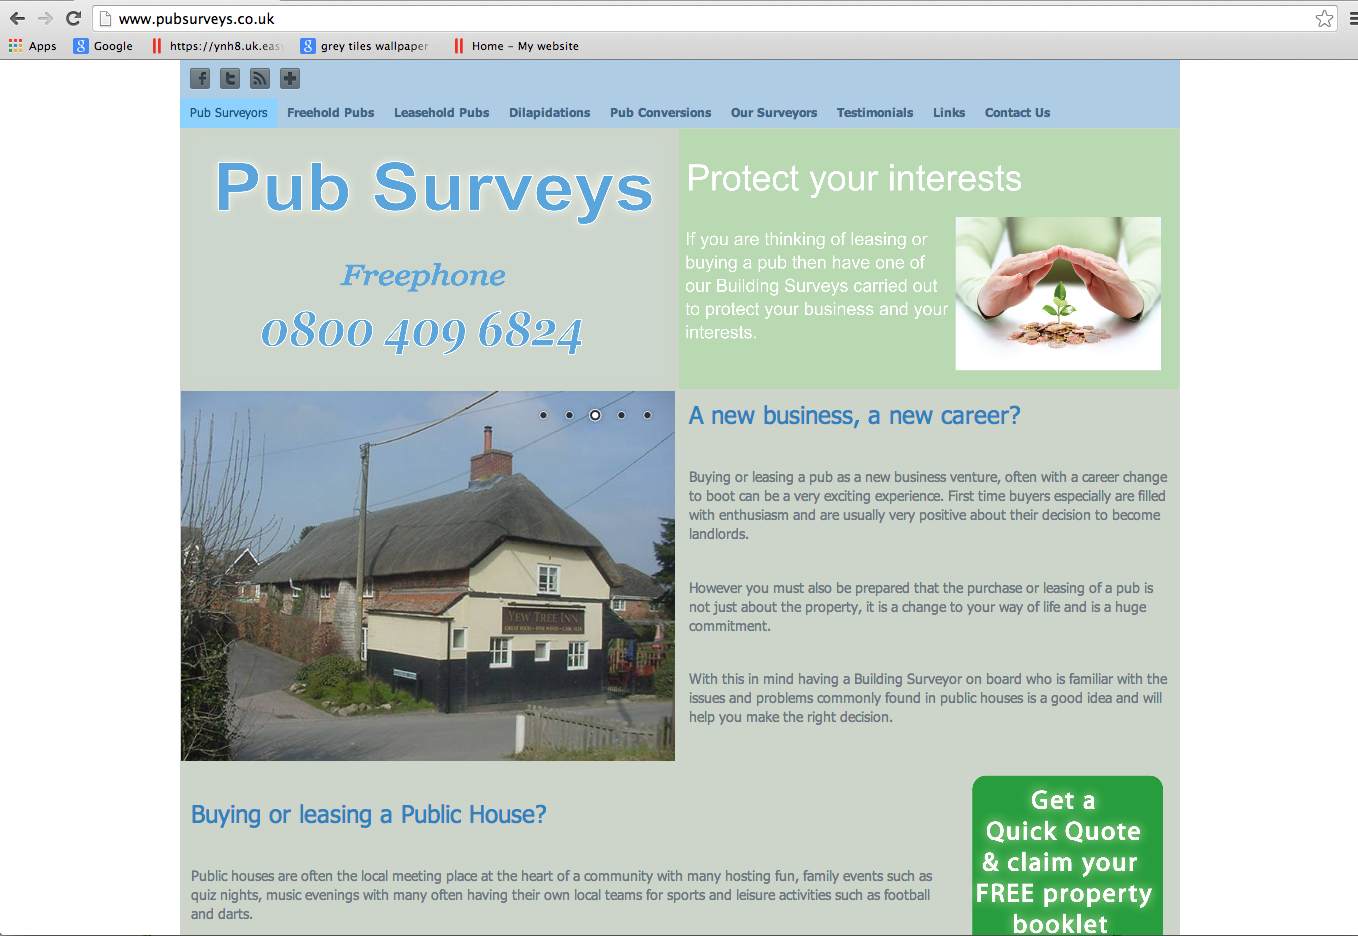 Website Brief - pubsurveys.co.uk